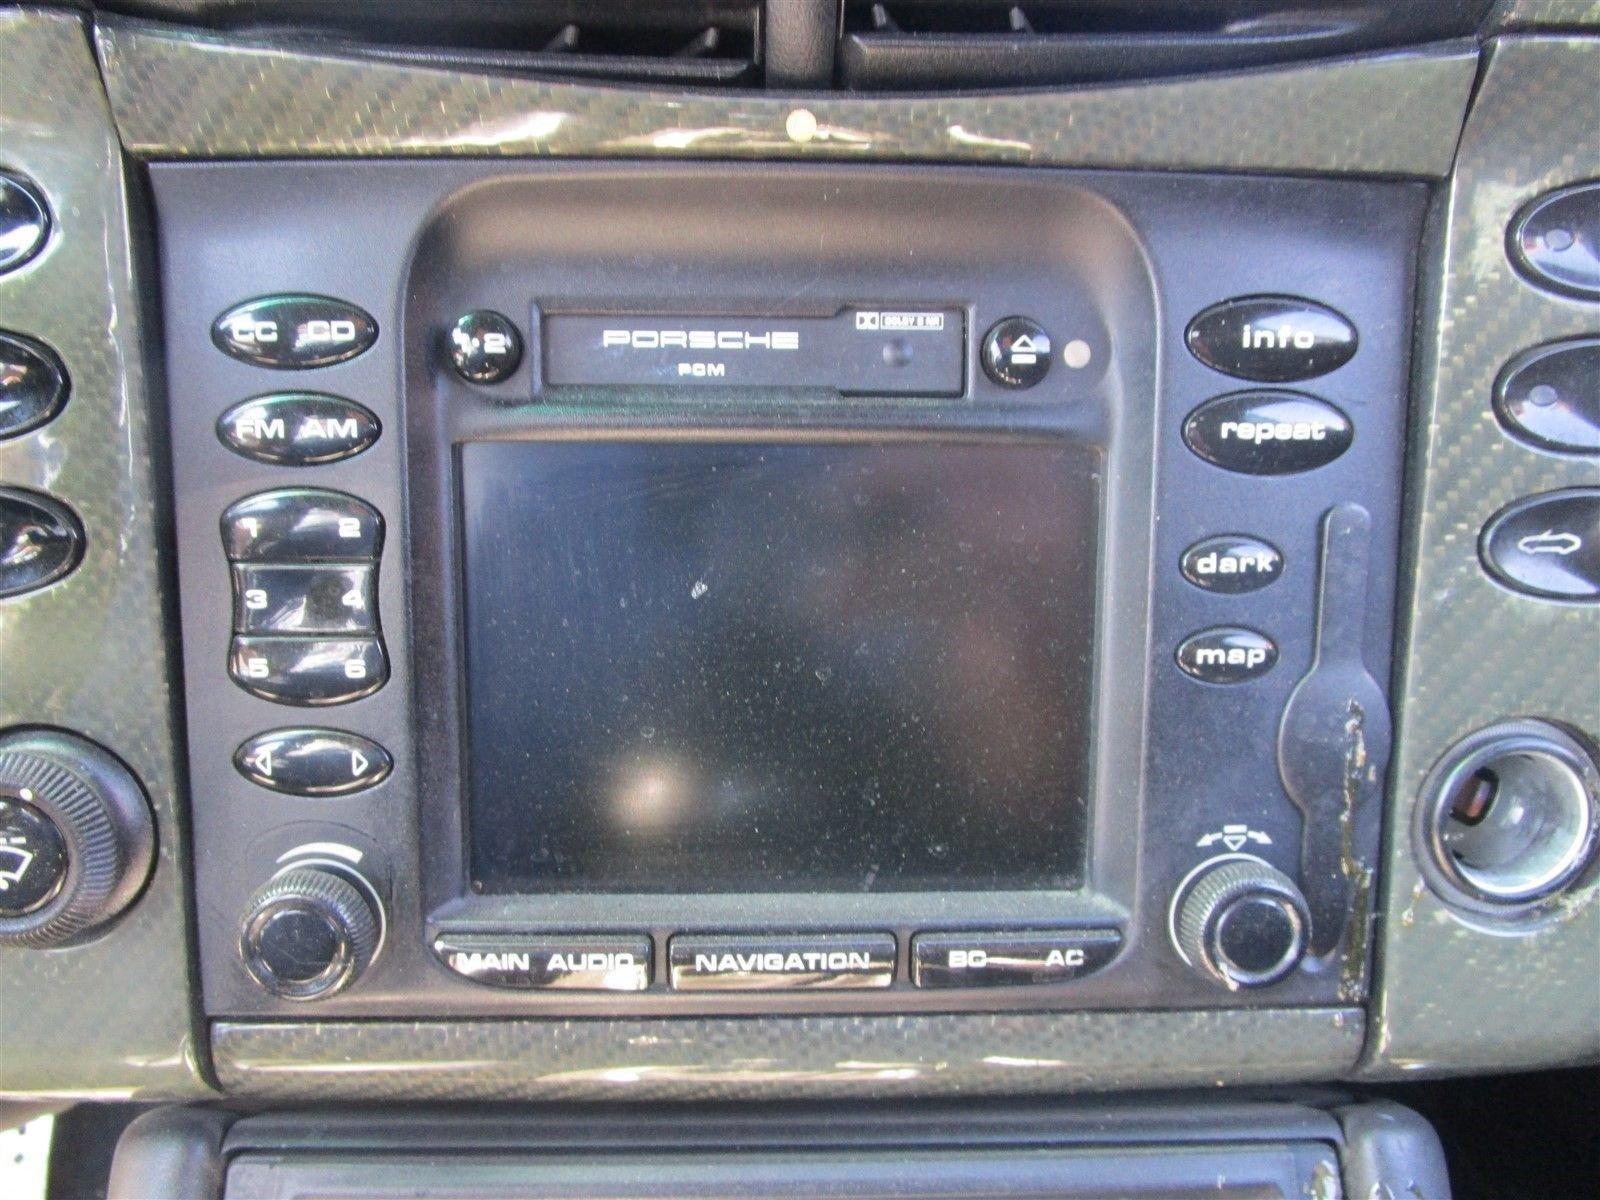 01 Carrera 911 Porsche NAVIGATION RADIO PCM TAPE PLAYER 99664290504 N/A 81,816